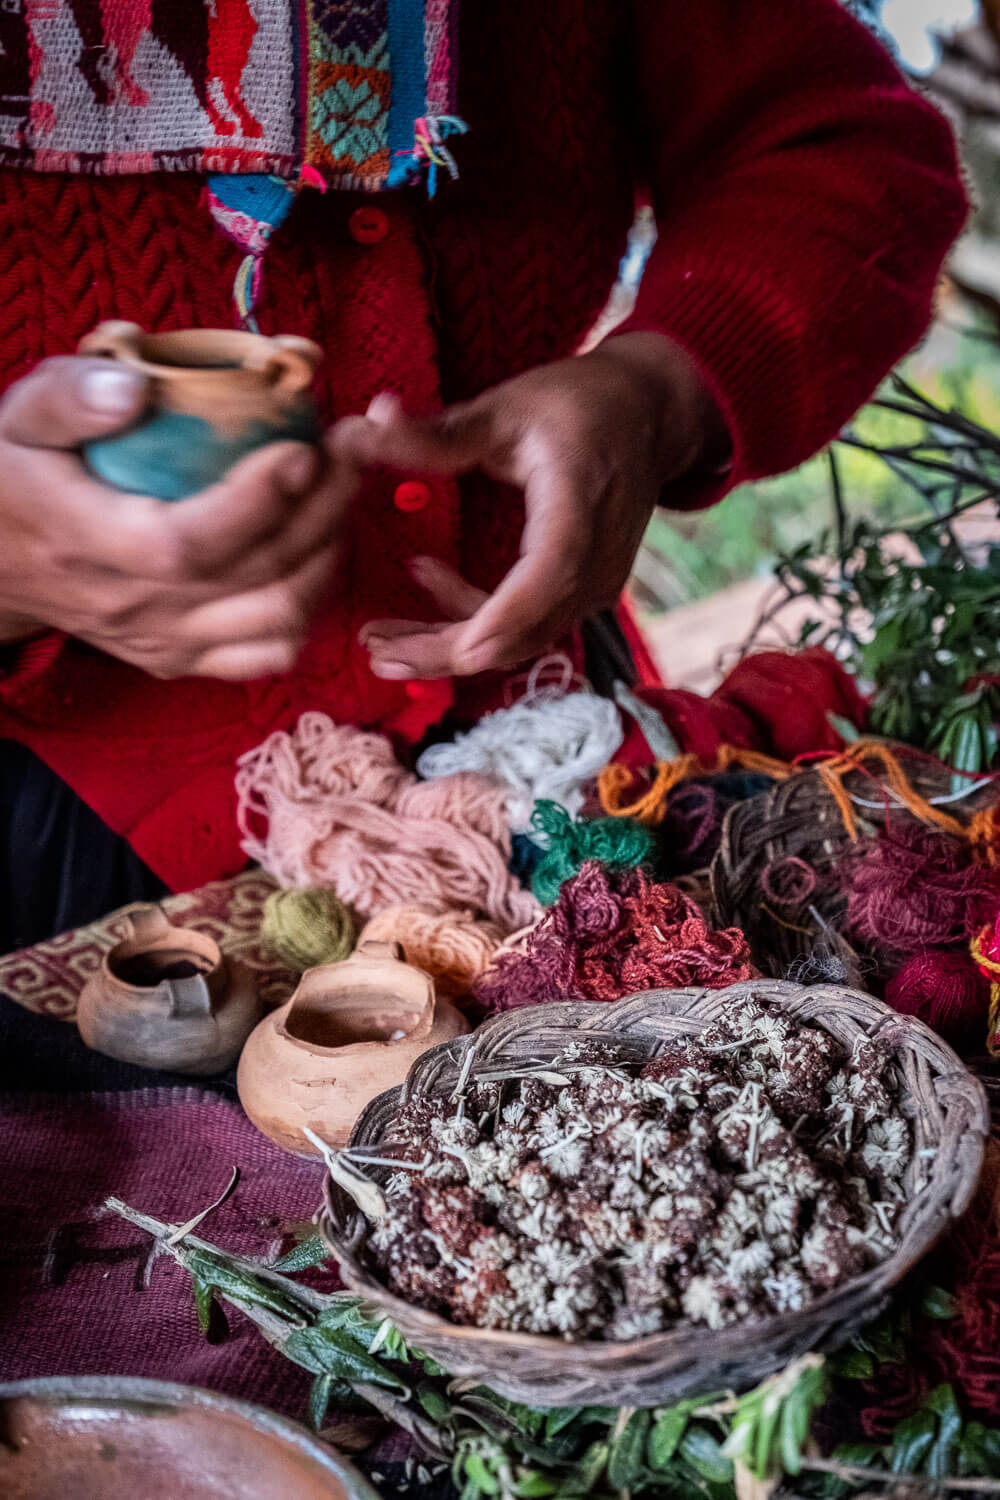 "Natural ingredients used to dye wool. The weavers of Patacancha, The Sacred Valley, Peru. Travel photography and guide by © Natasha Lequepeys for ""And Then I Met Yoko"". #peru #sacredvalley #patacancha #photoblog #travelblog #travelphotography #portraitphotography #travelitinerary #fujifilm #weaving #tradition #culture #people #andes #village #weavingdemonstration #cusco #ollantaytambo #travel #travelperu"